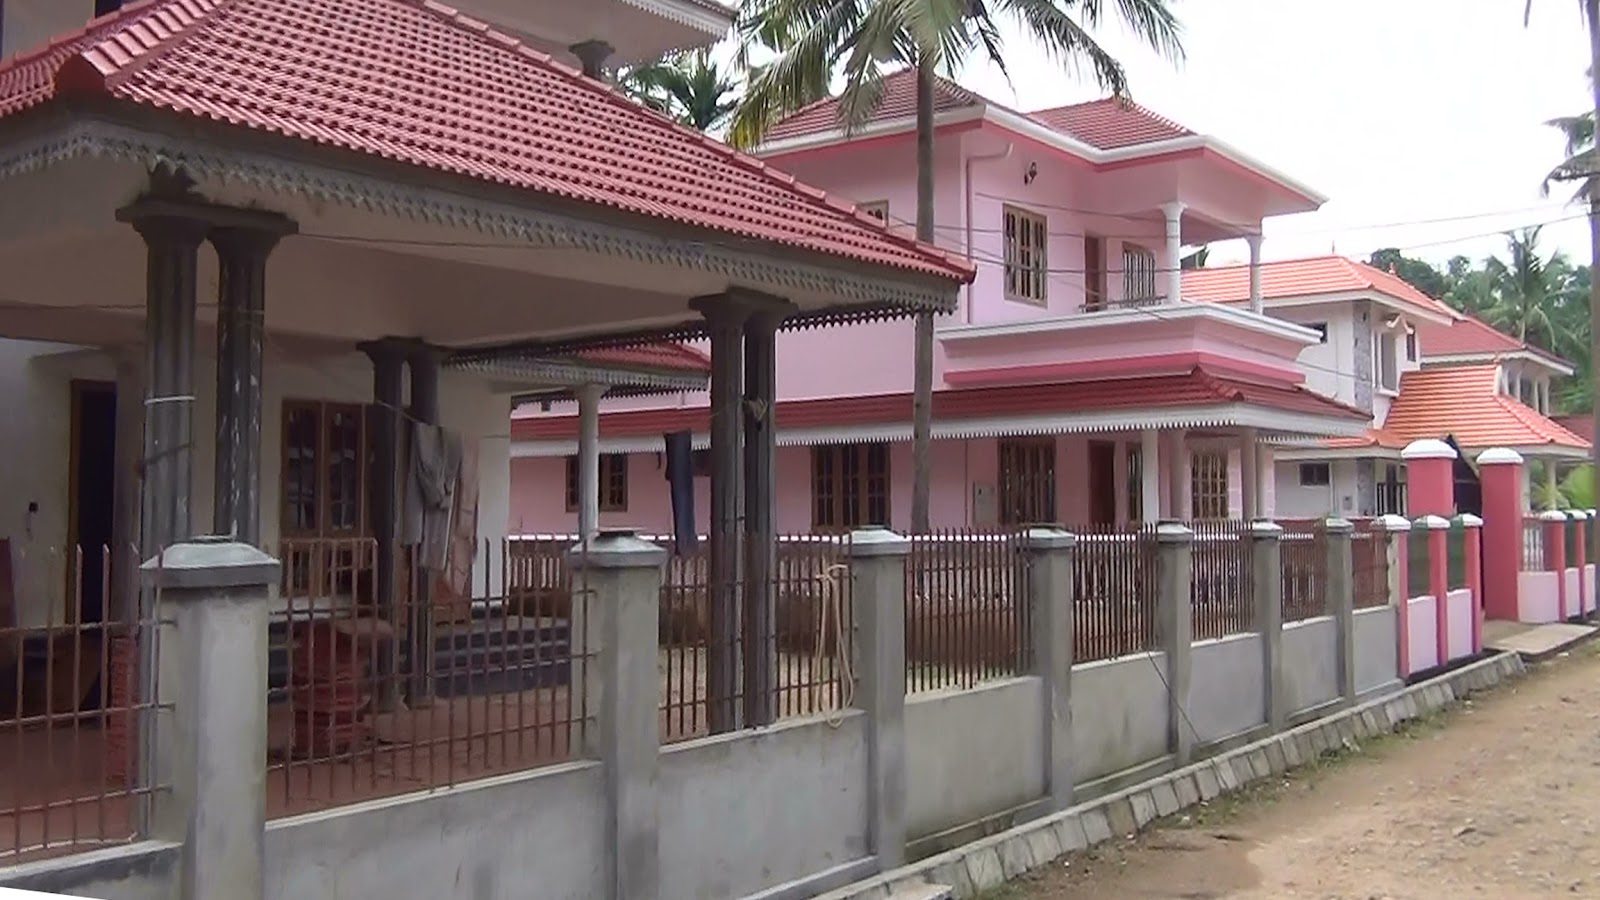 House compound wall designs in kerala - Home design and style